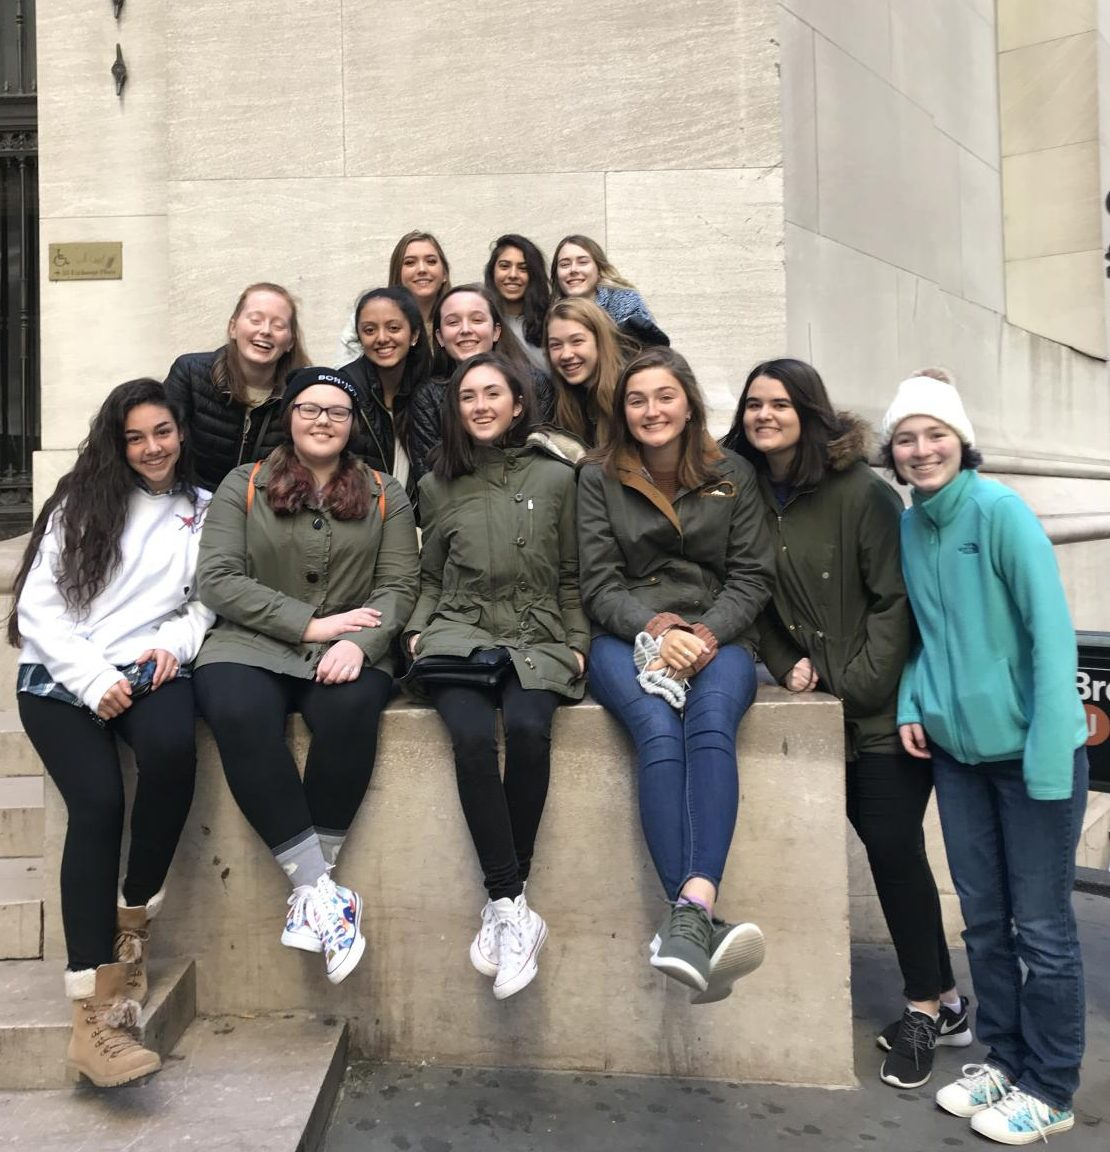 IBDP '20 (missing a couple) on our IB trip to NYC in October 2018.